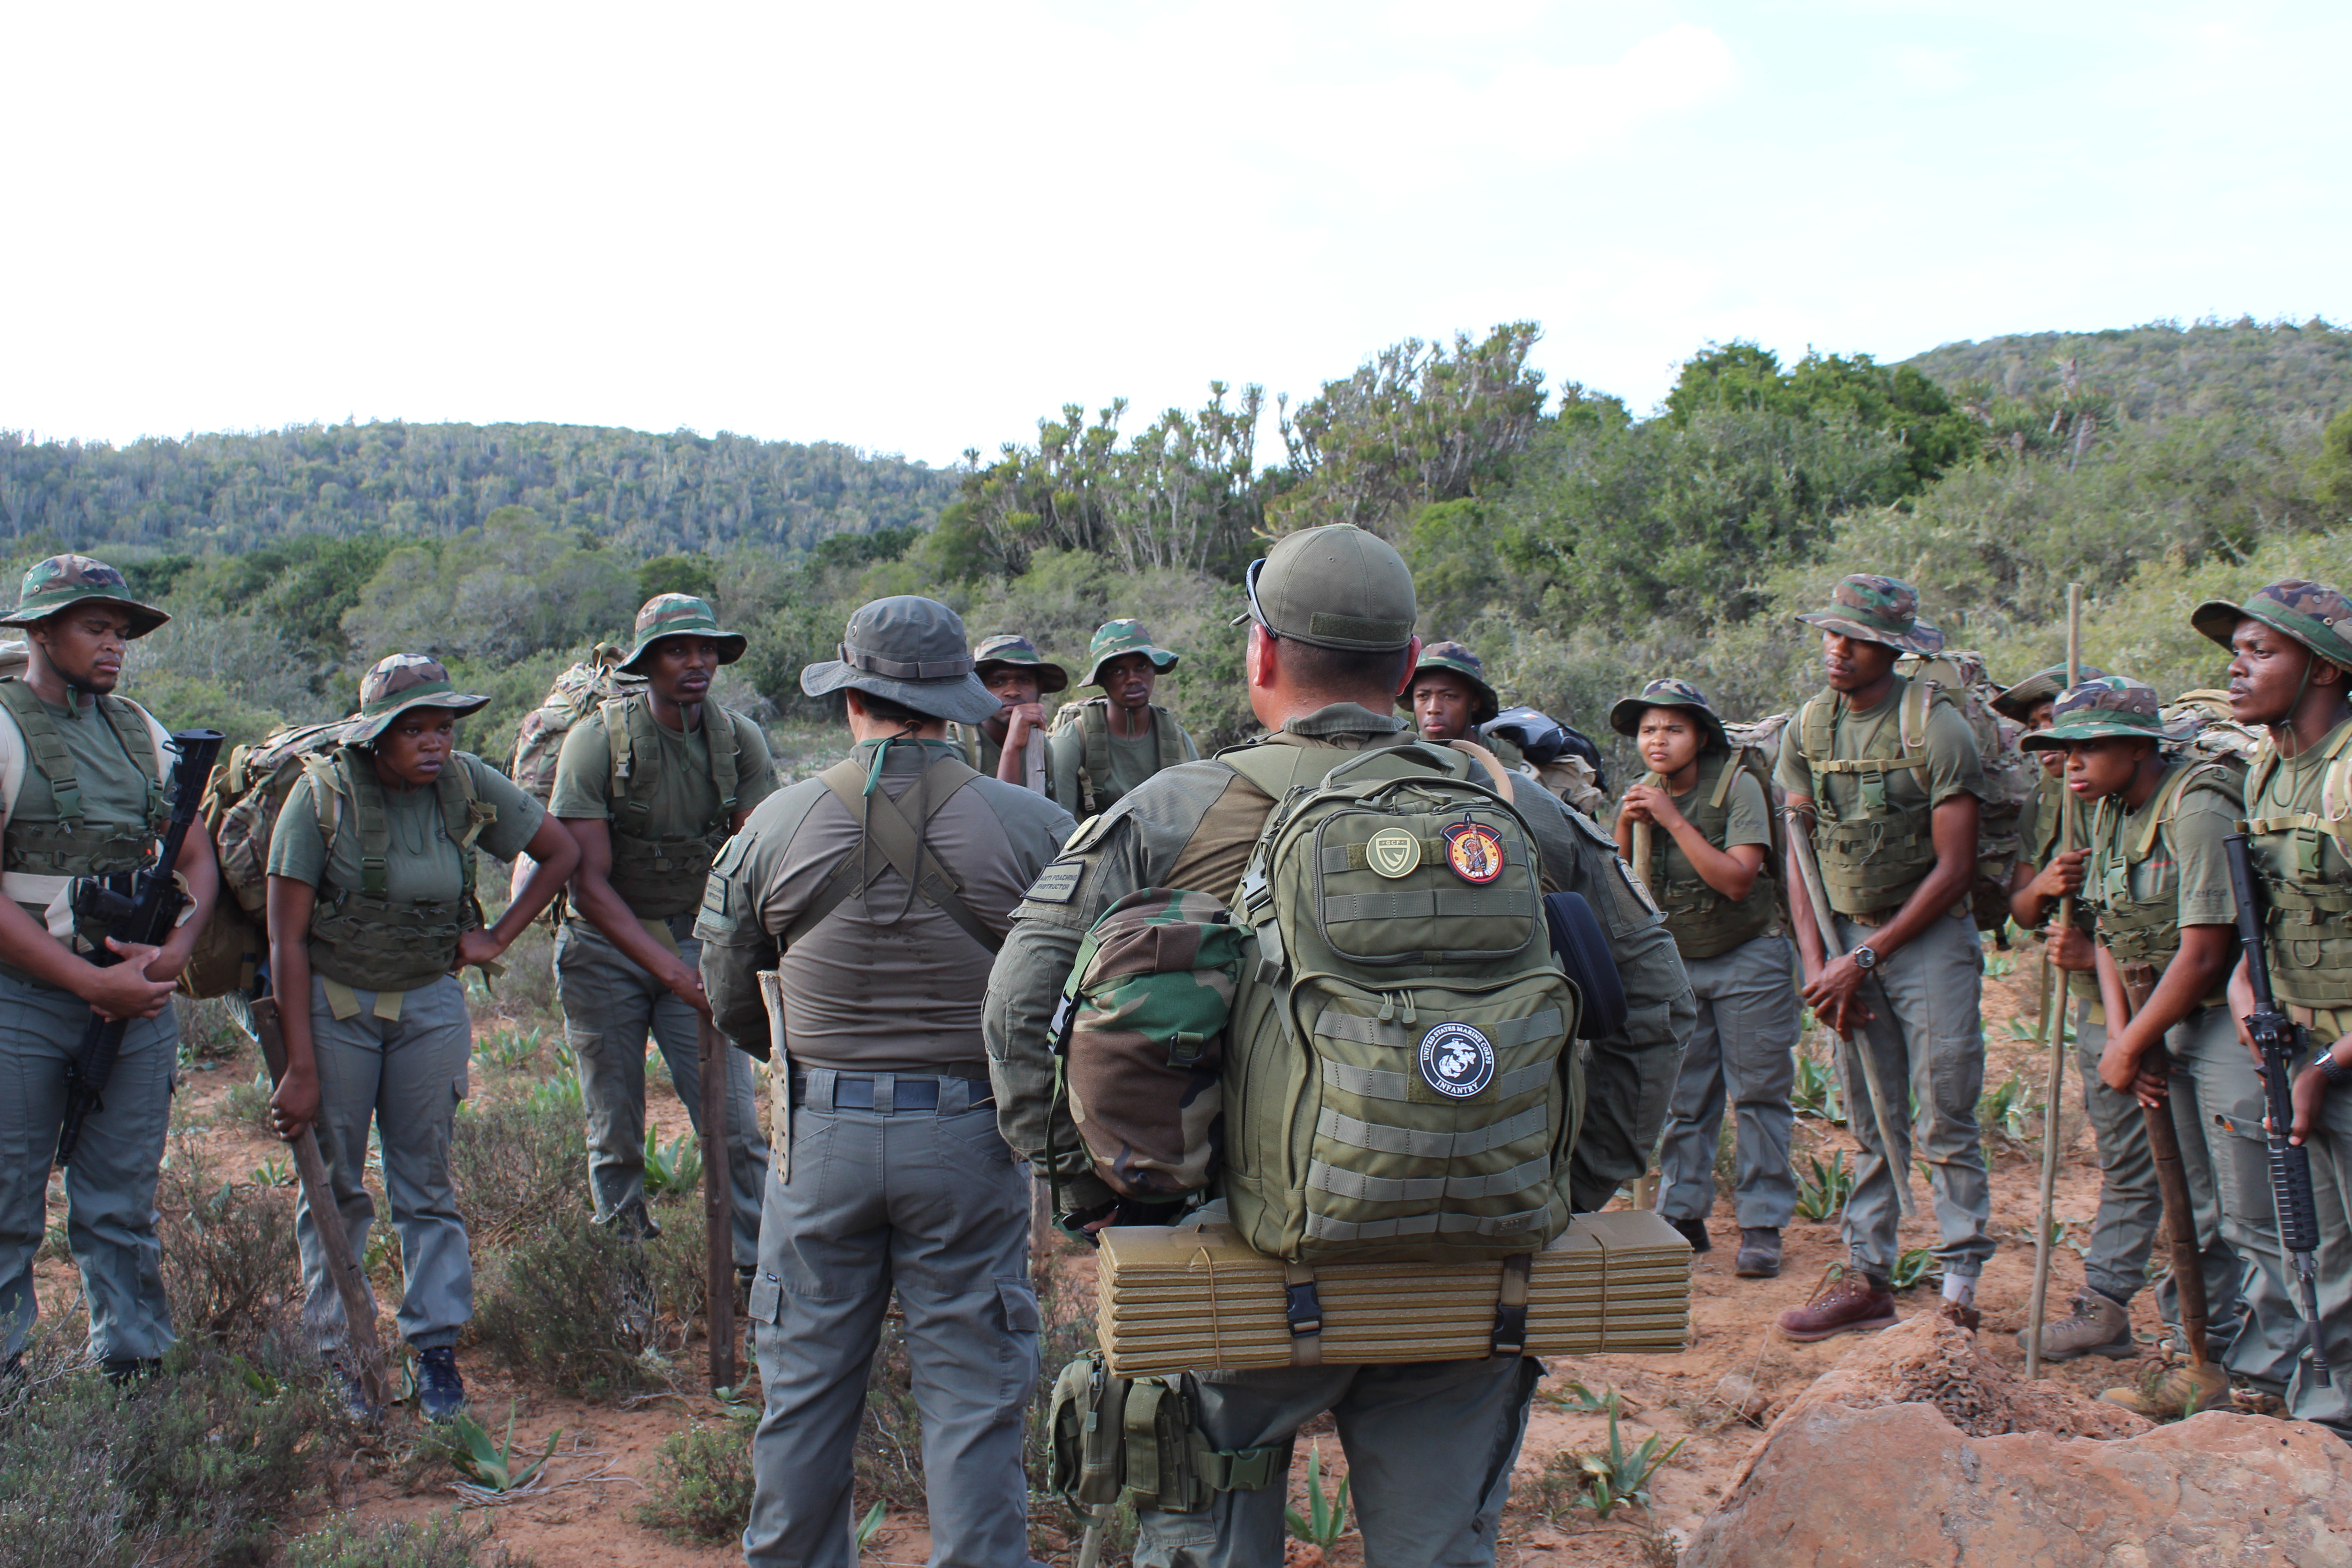 Men and women dressed in olive green standing outdoors in the bush listening to their instructor